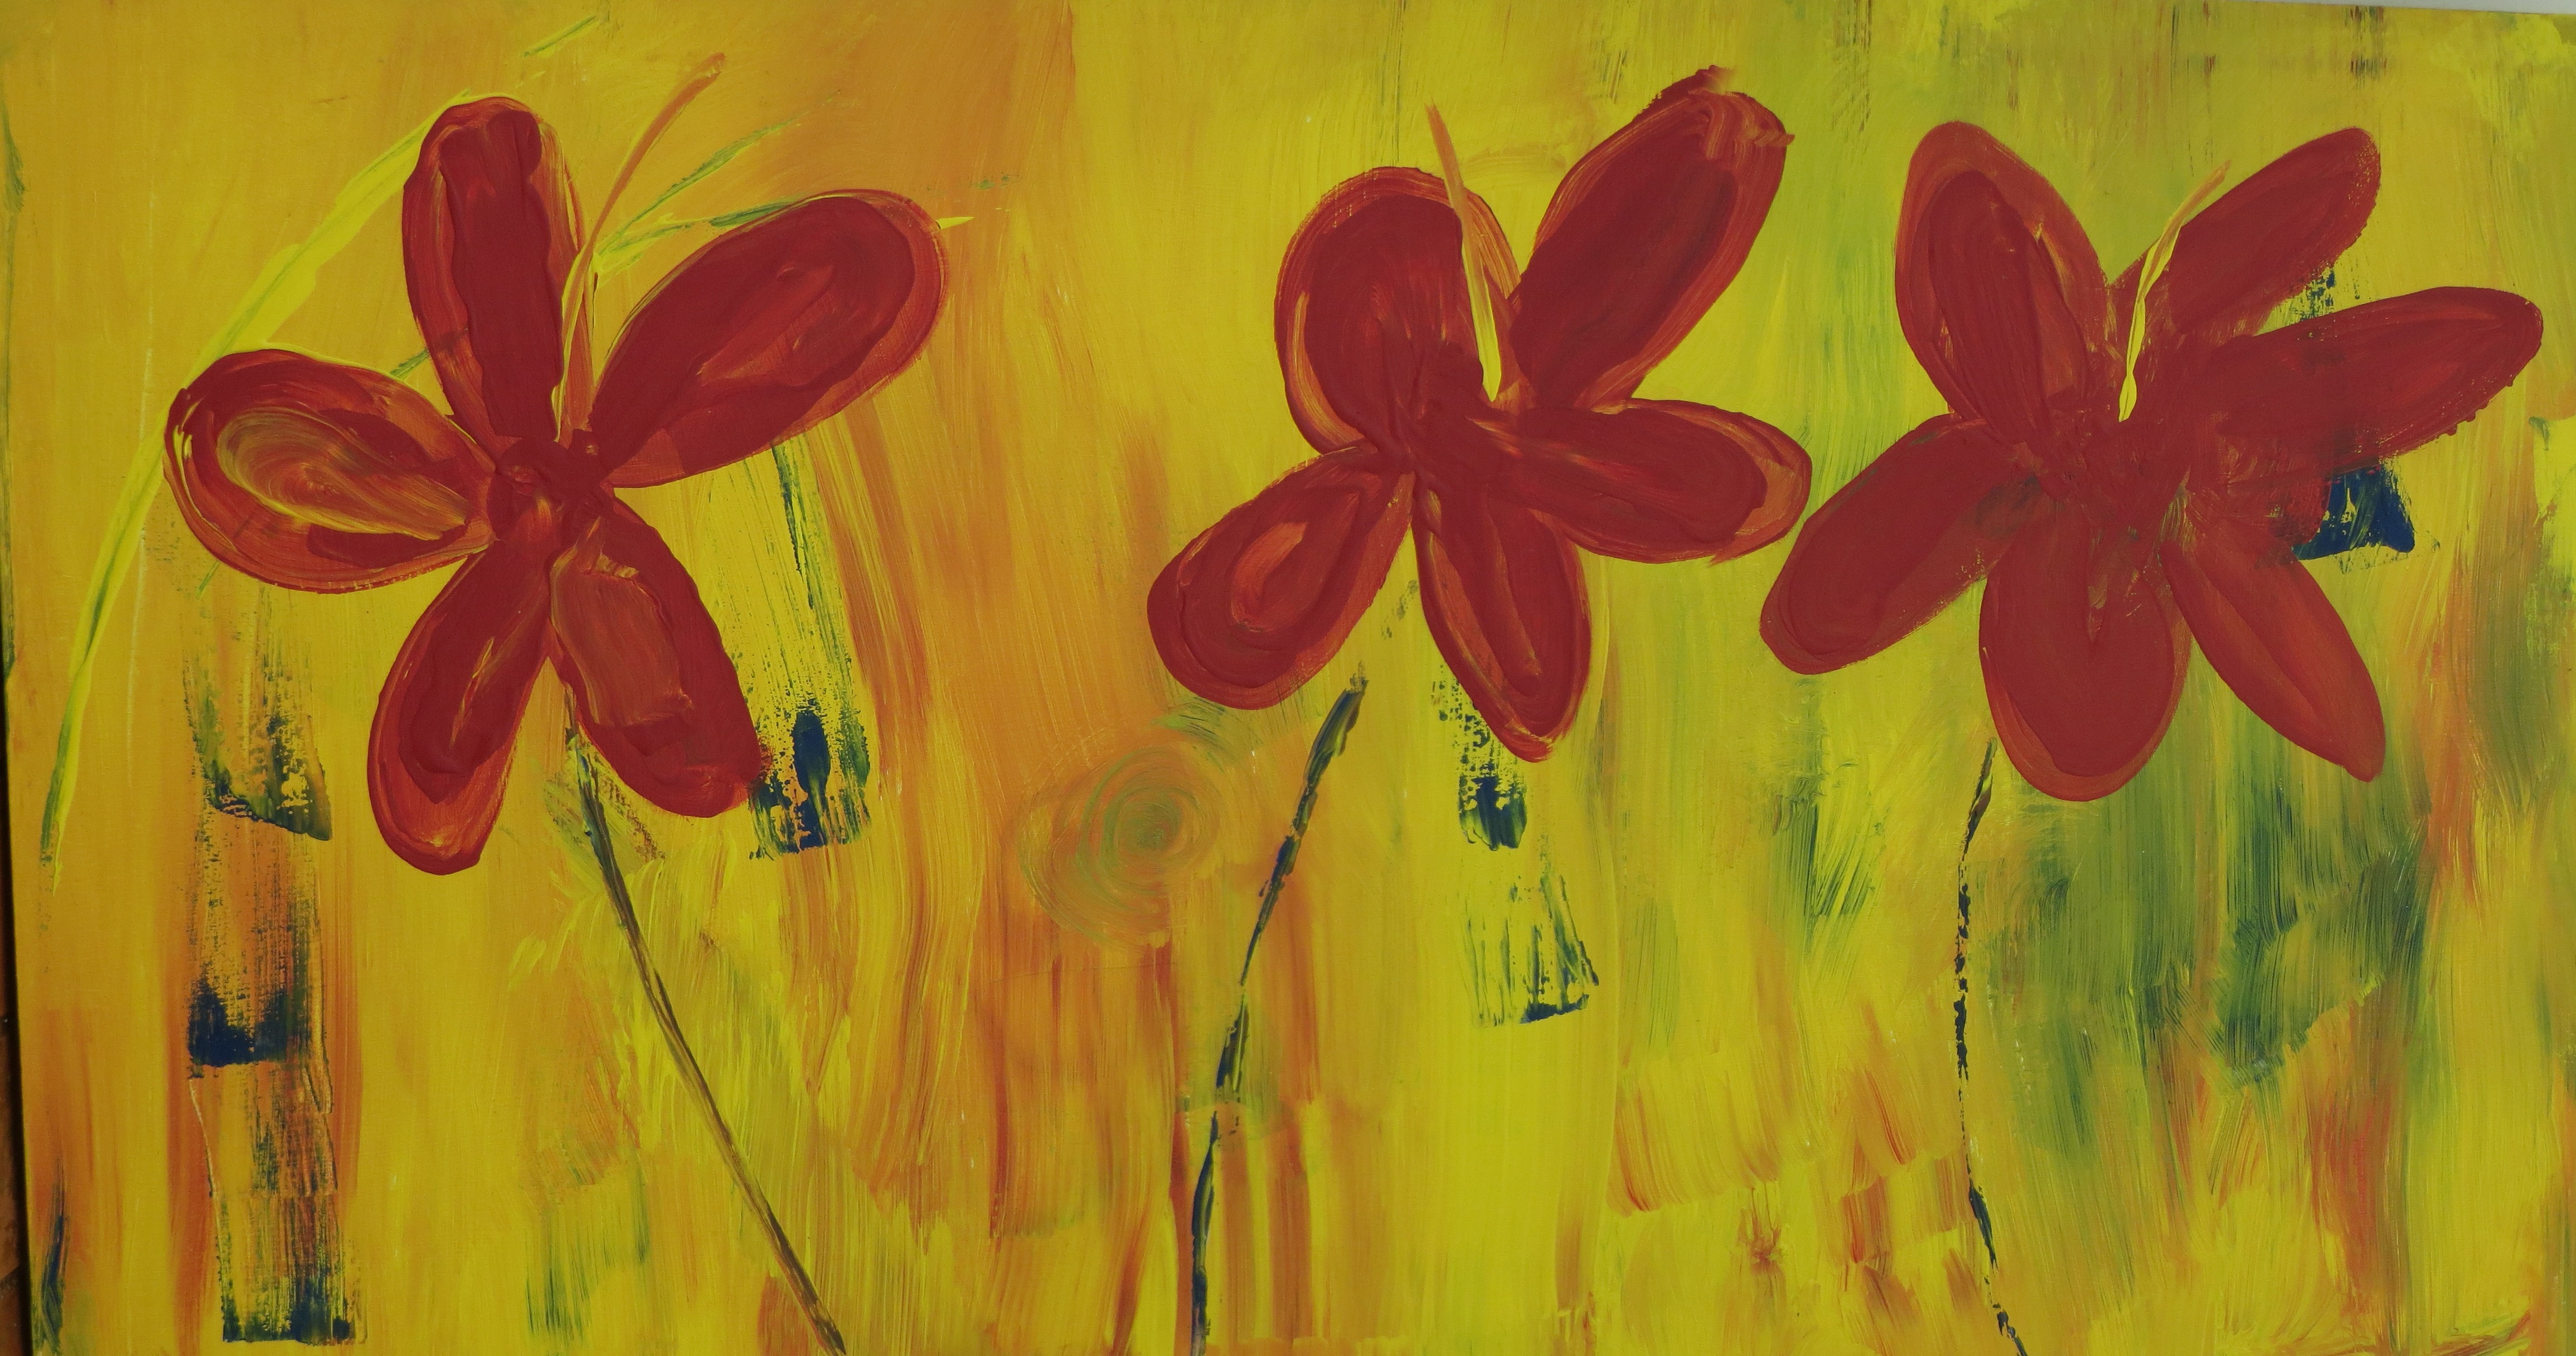 Red Flowers Acrylic Painting On Wall Free Image